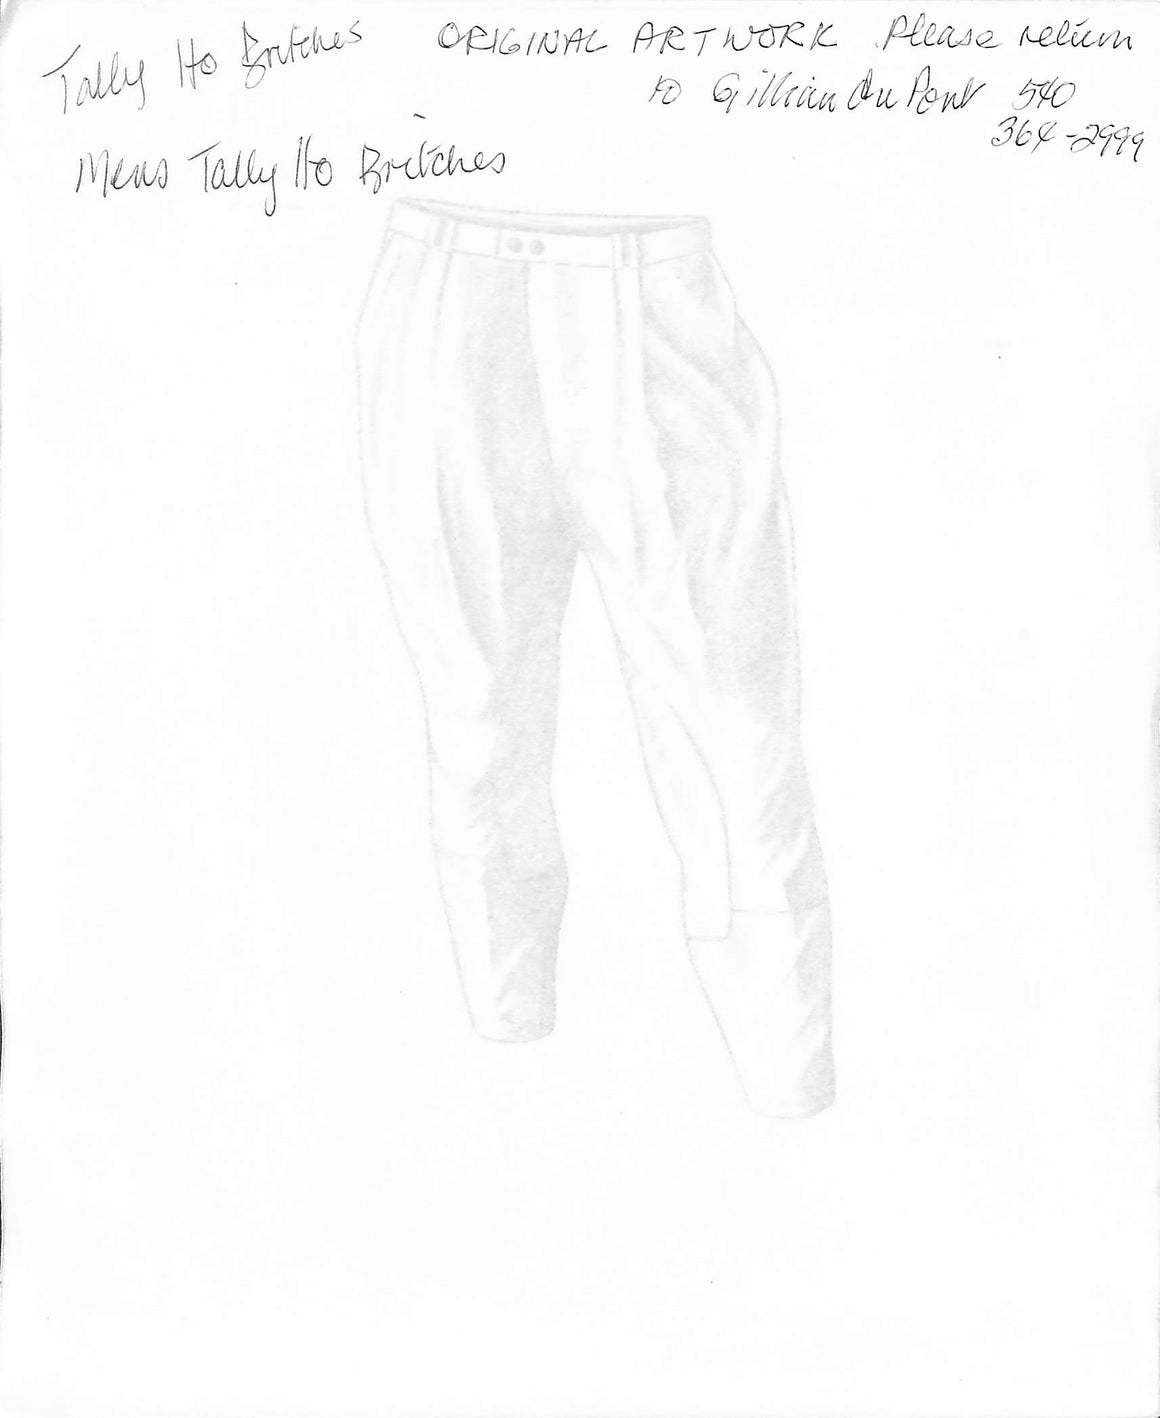 Men's Tally-Ho Britches Graphite Sketch